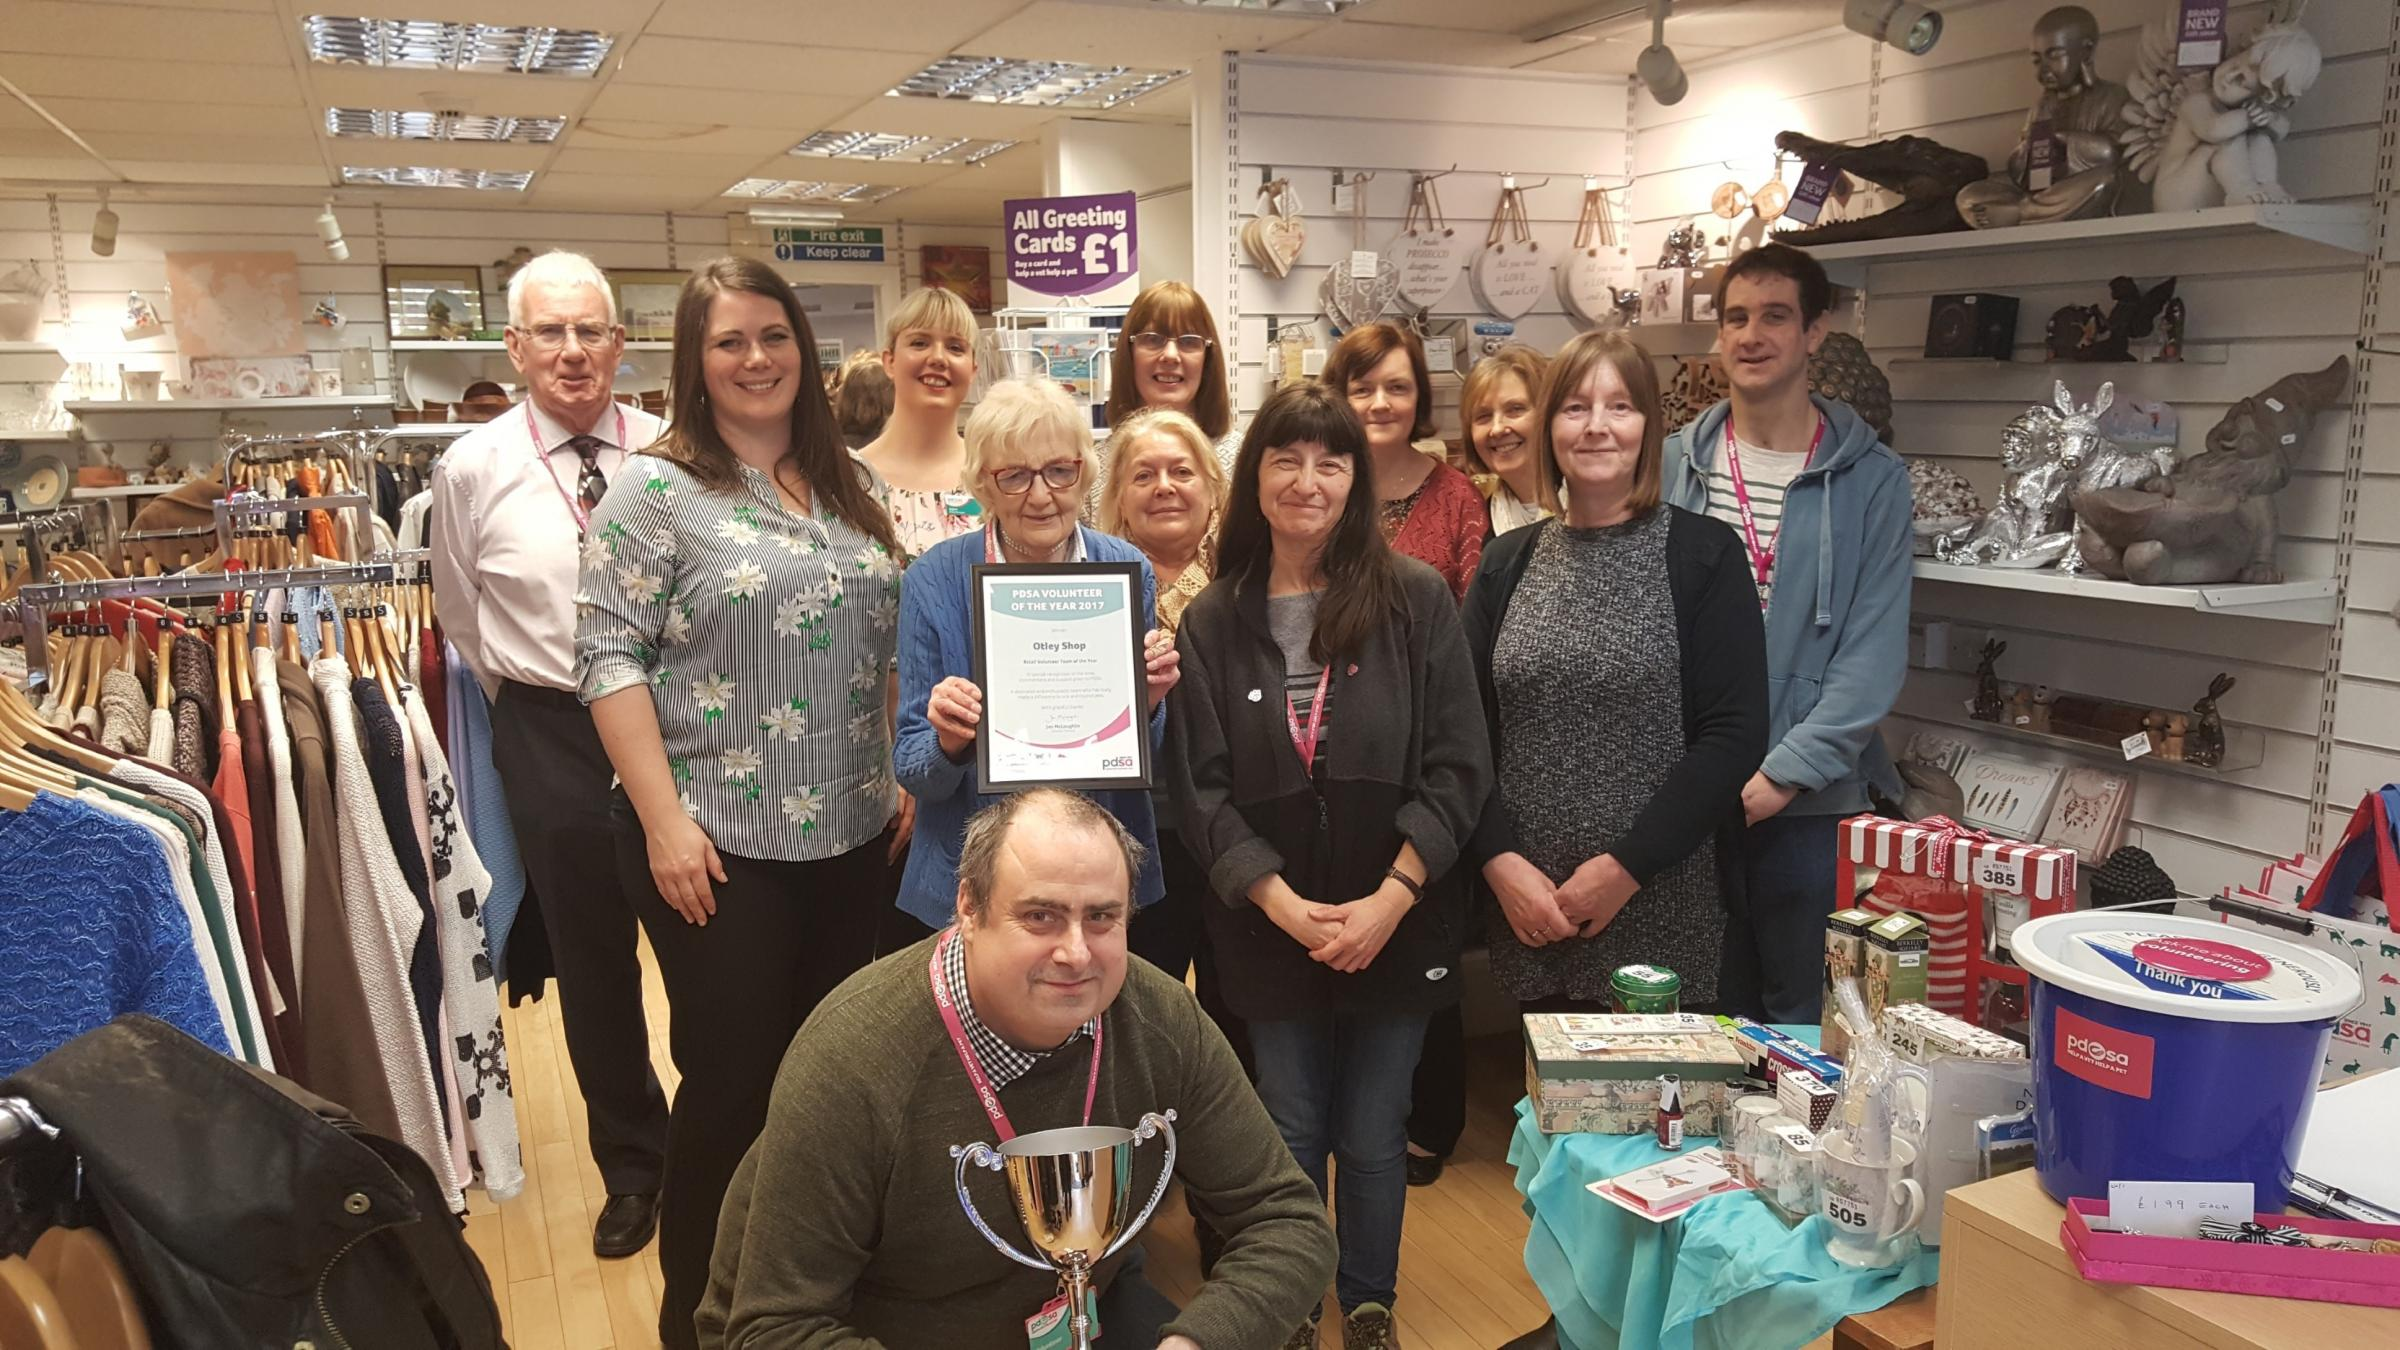 Volunteers at Otley's PDSA charity shop receiving their Retail Team of the Year award from Caroline Talbot (second from left)